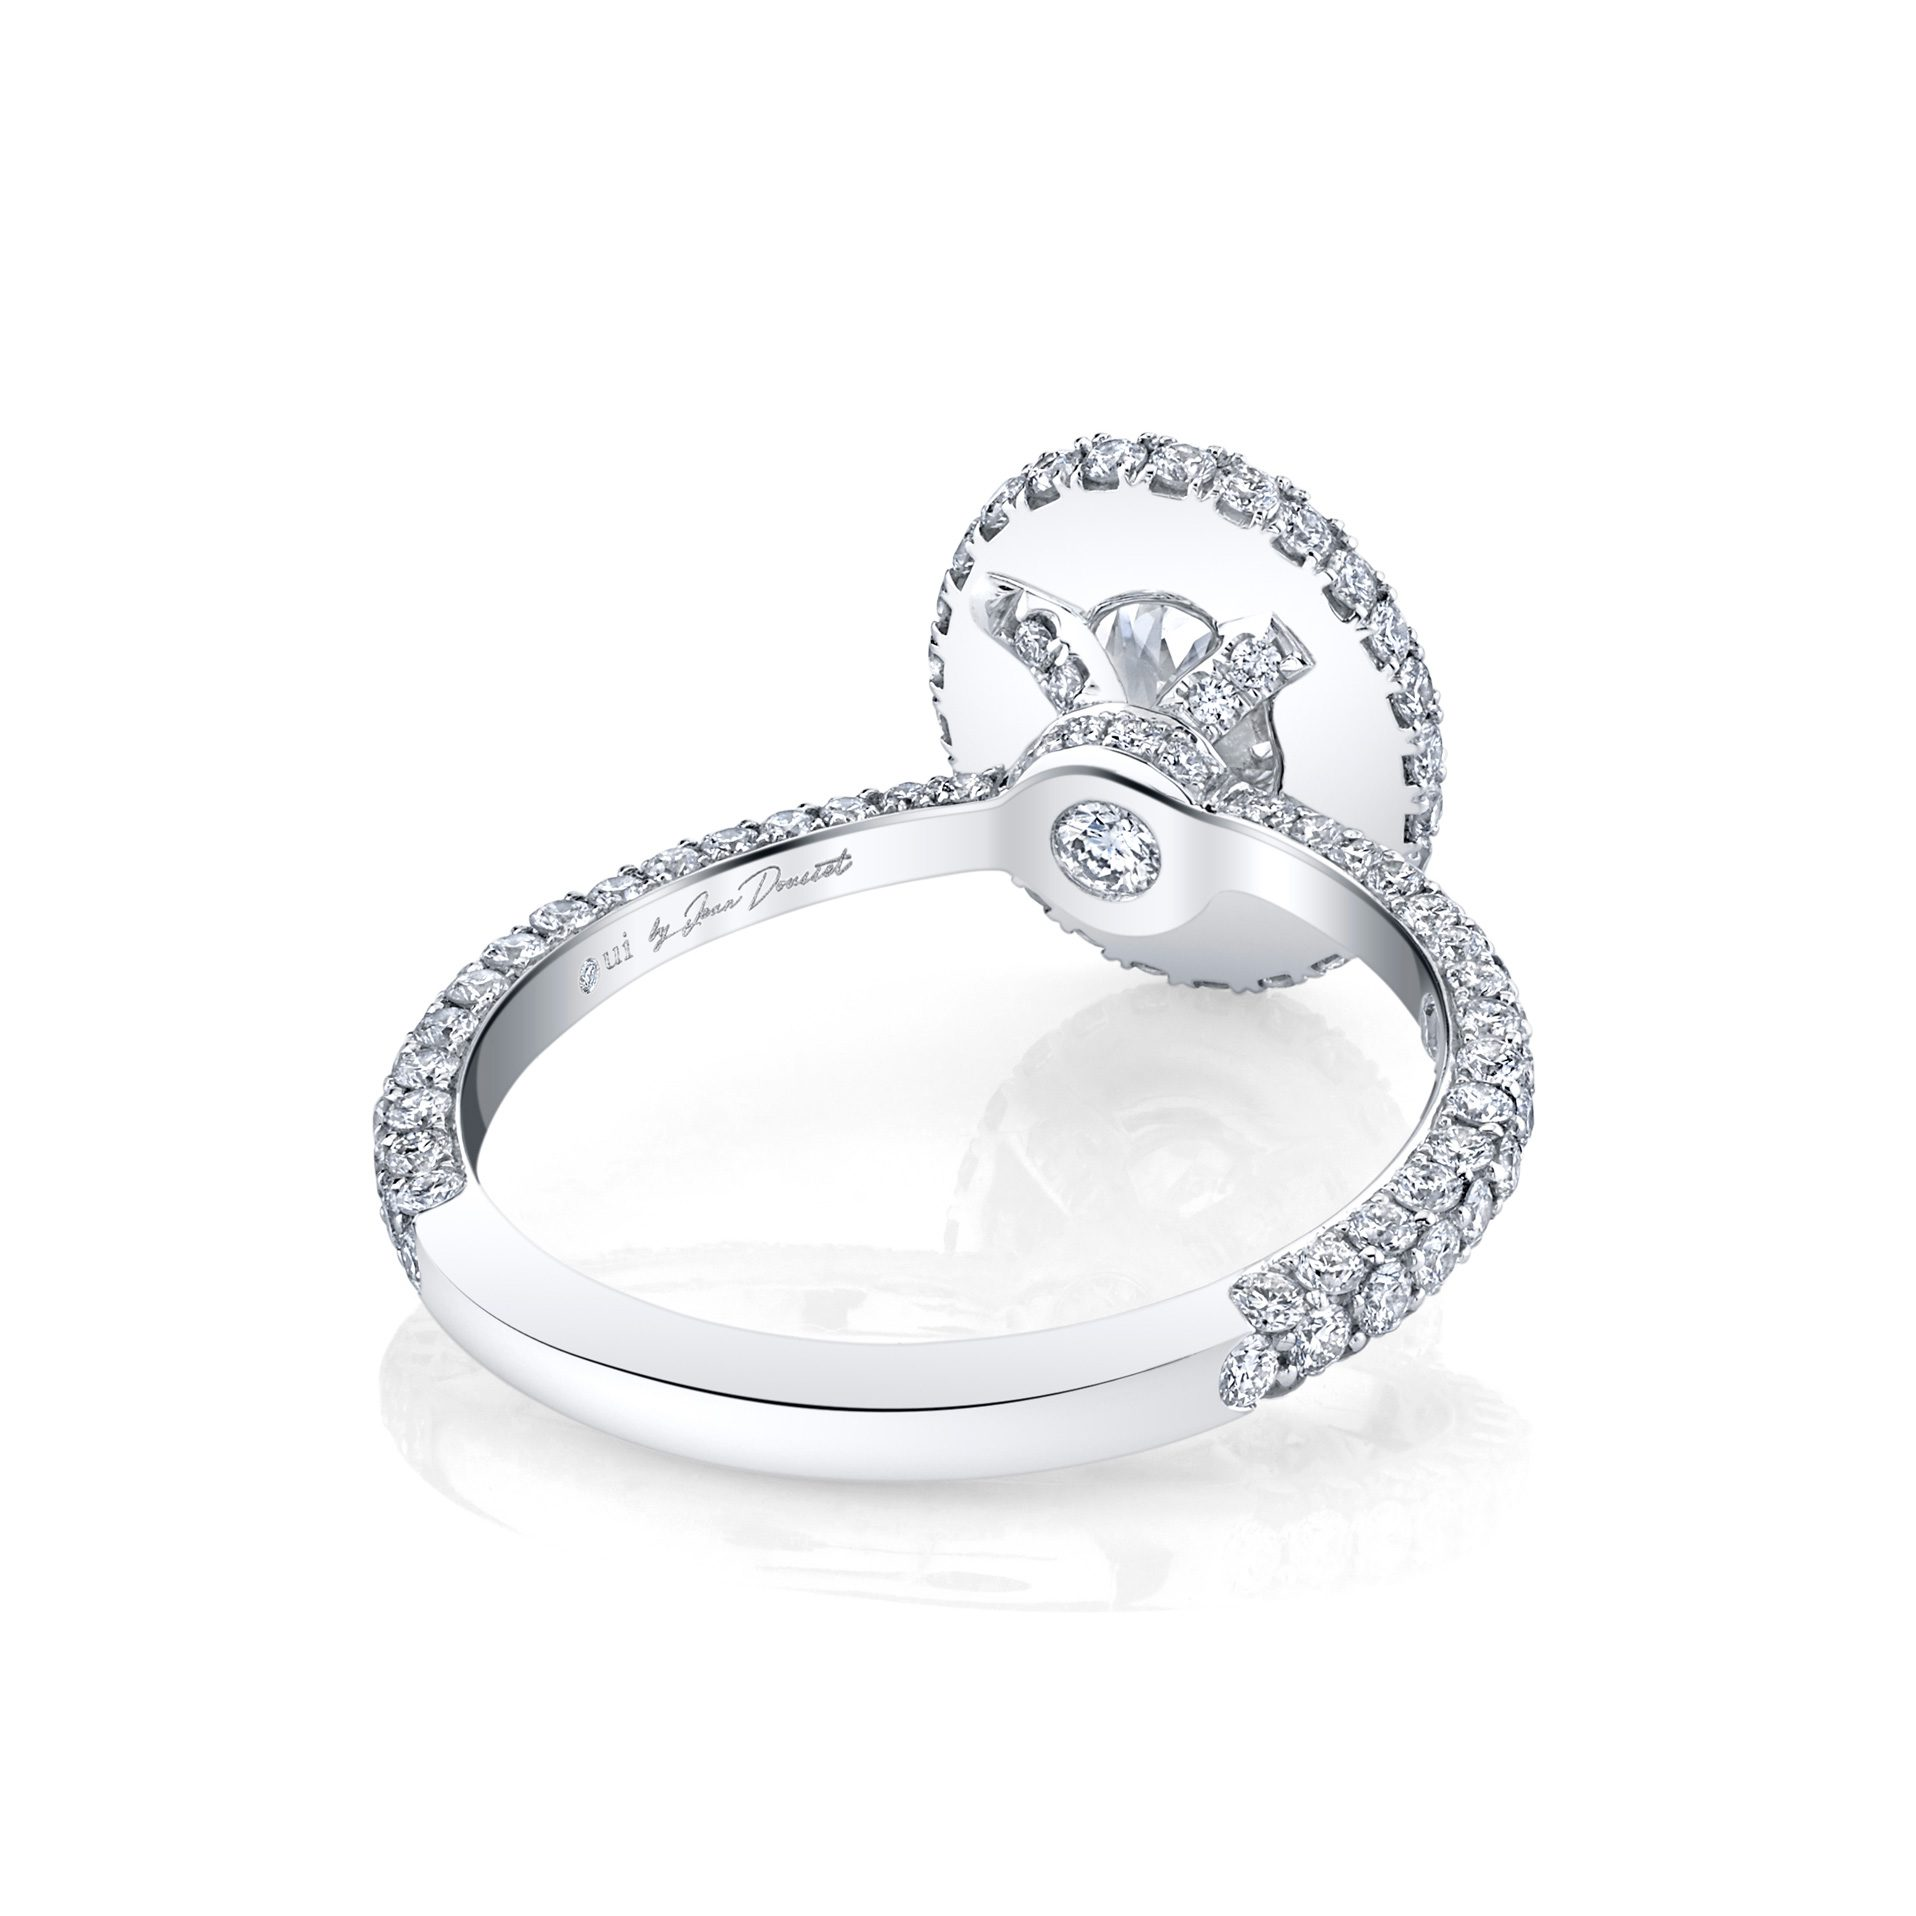 Jacqueline Oval Seamless Halo® Engagement Ring with diamond pavé in 18k White Gold Back View by Oui by Jean Dousset